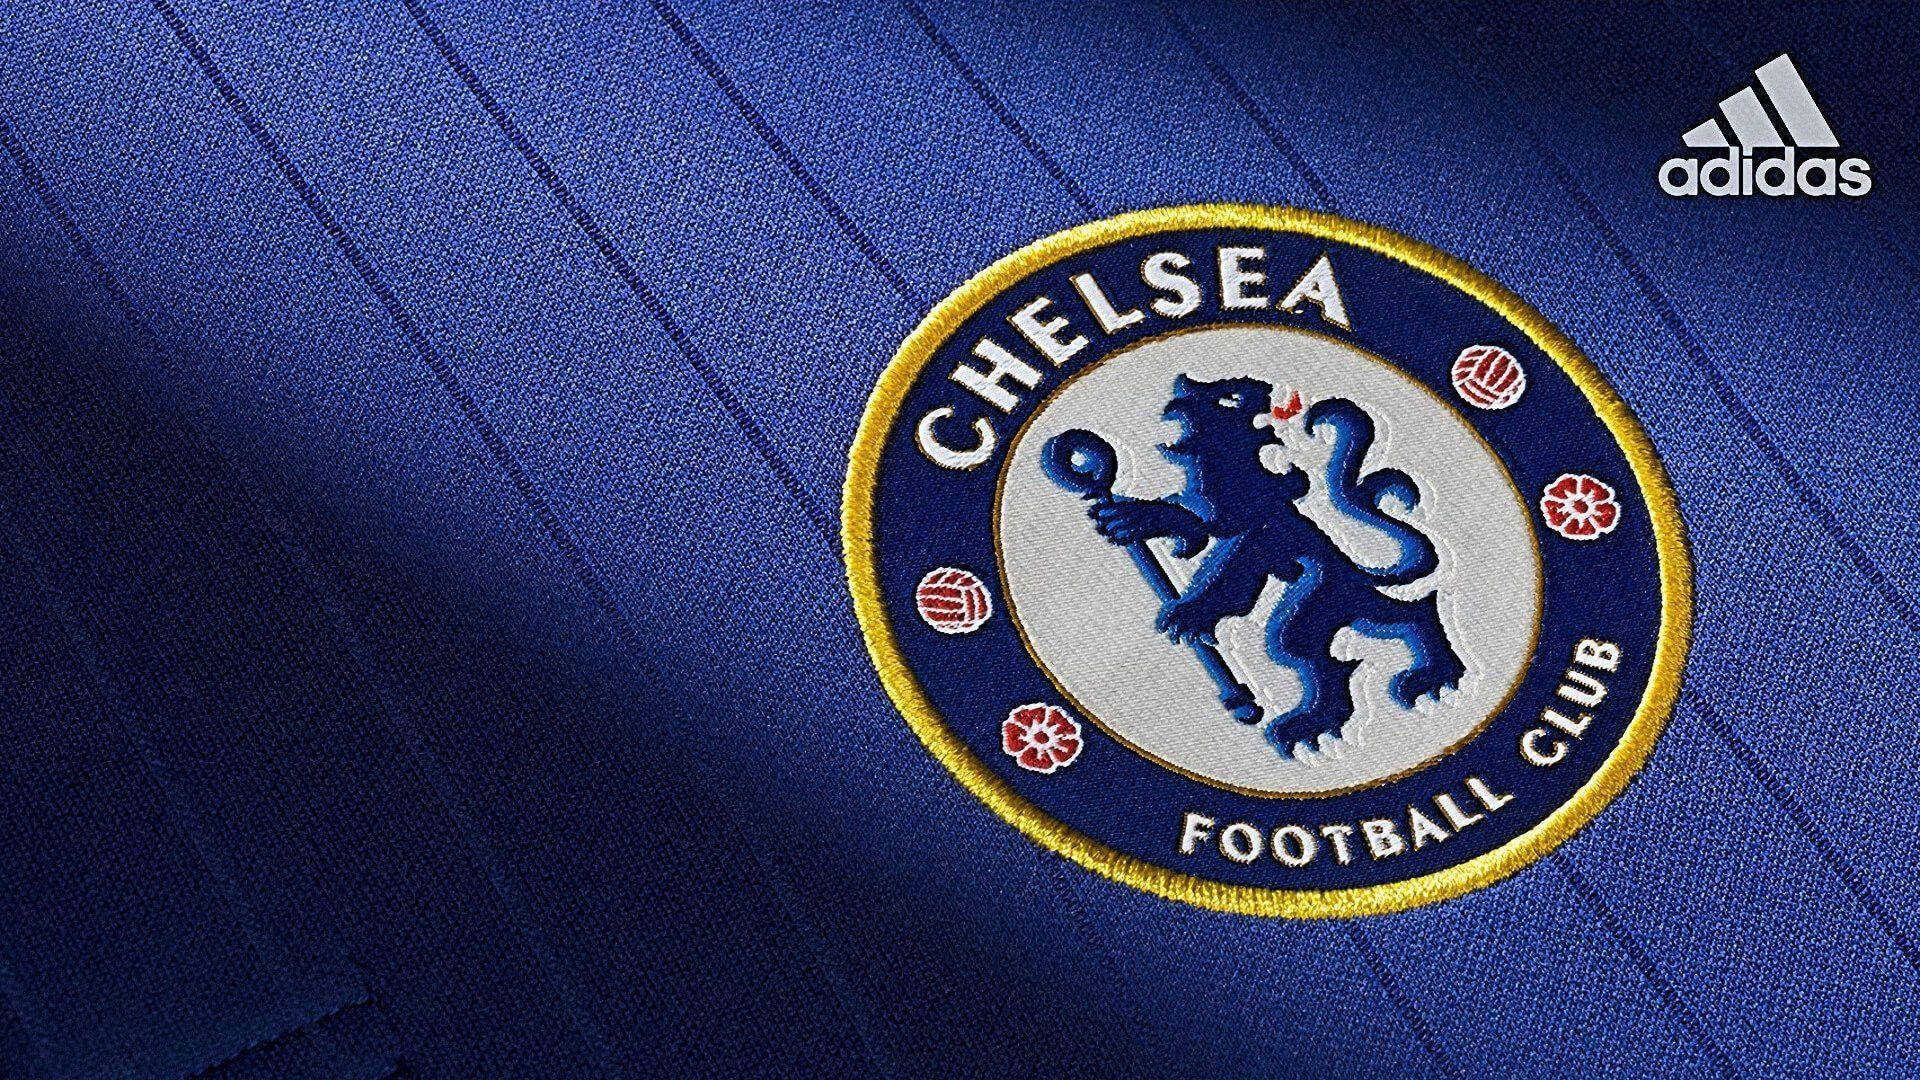 Chelsea HD Wallpapers 2016 1920x1080